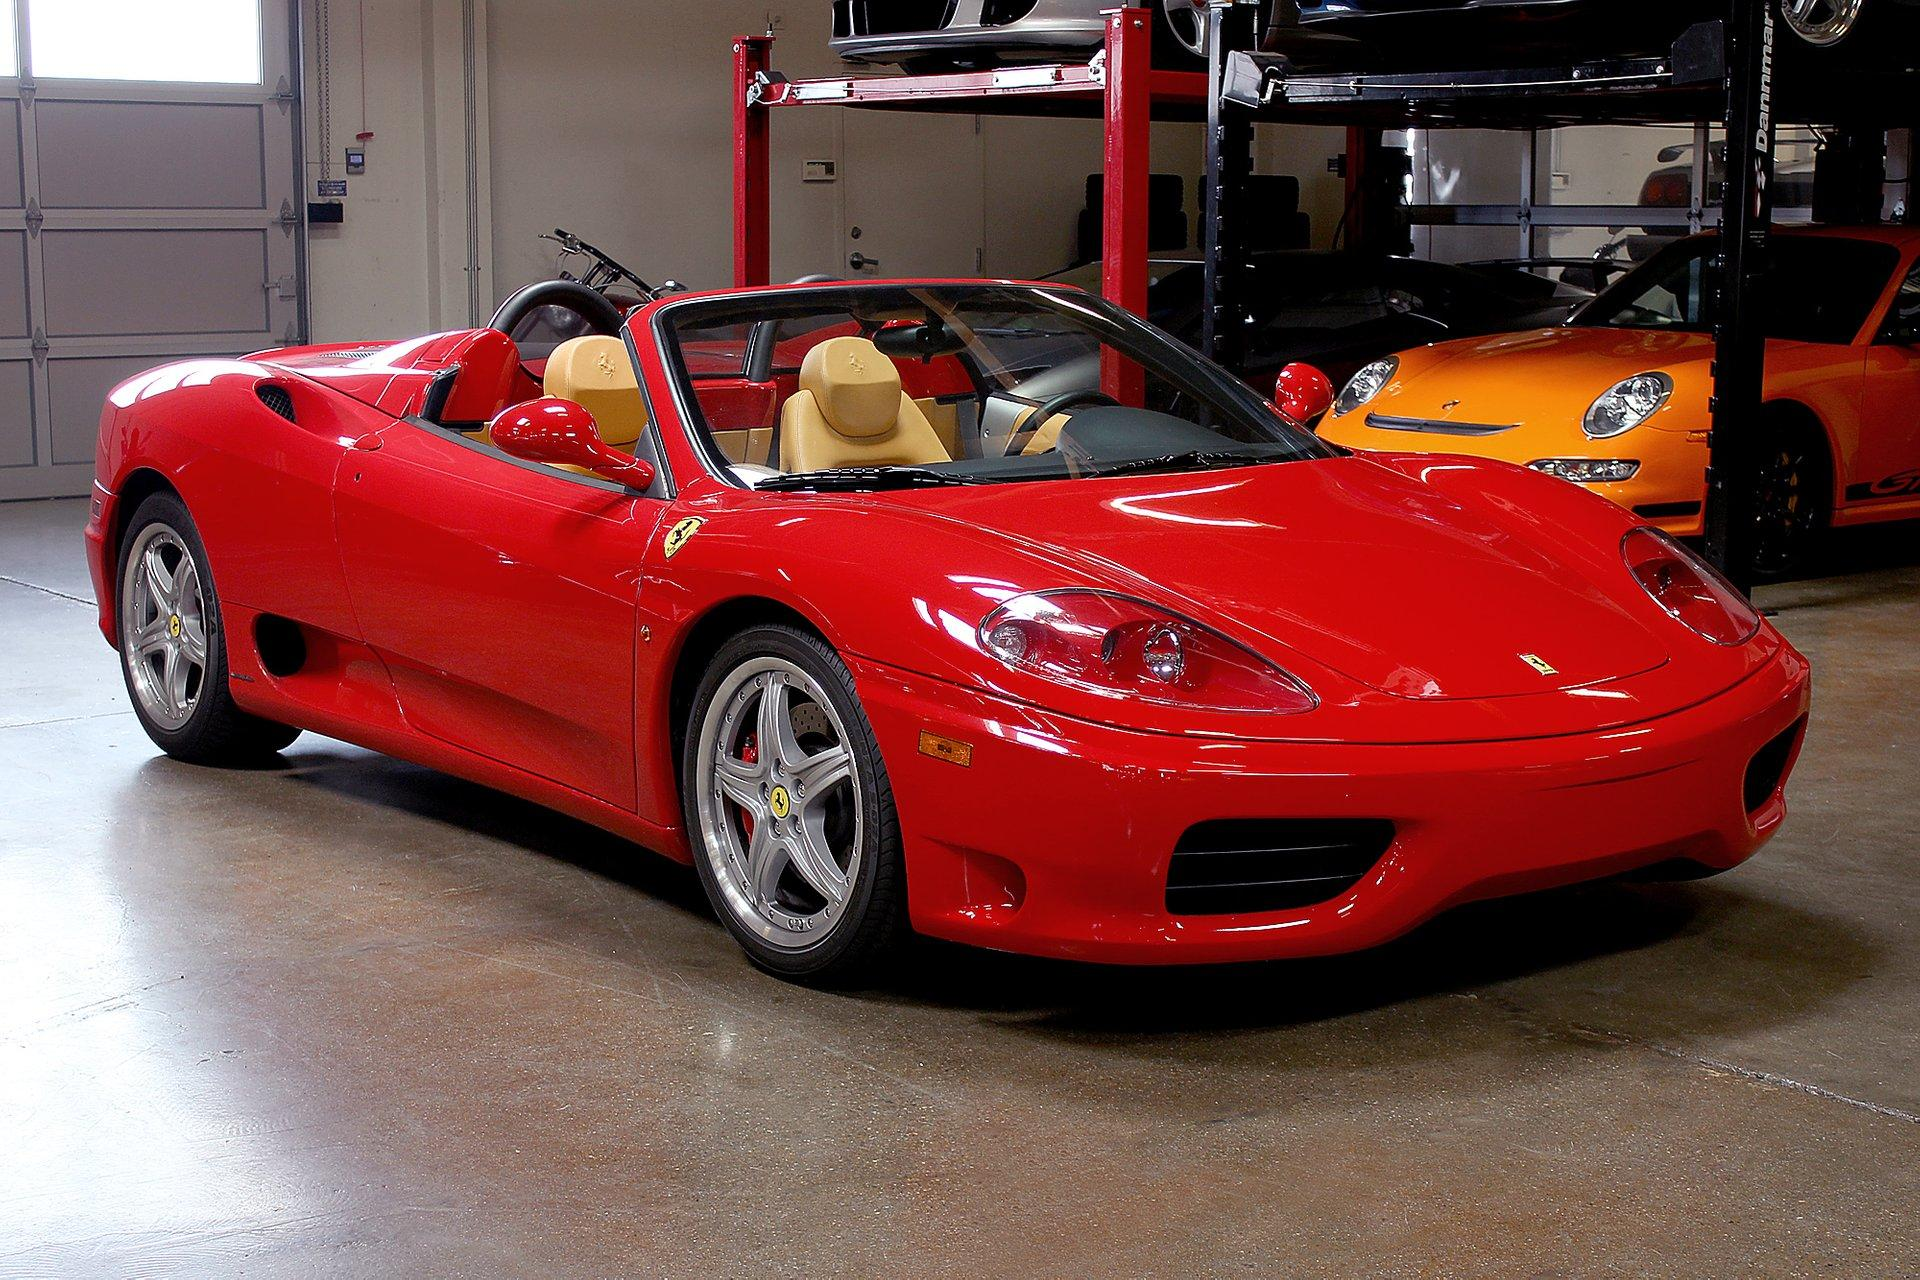 Used 2004 Ferrari 360 Spider For Sale Special Pricing San Francisco Sports Cars Stock C17046